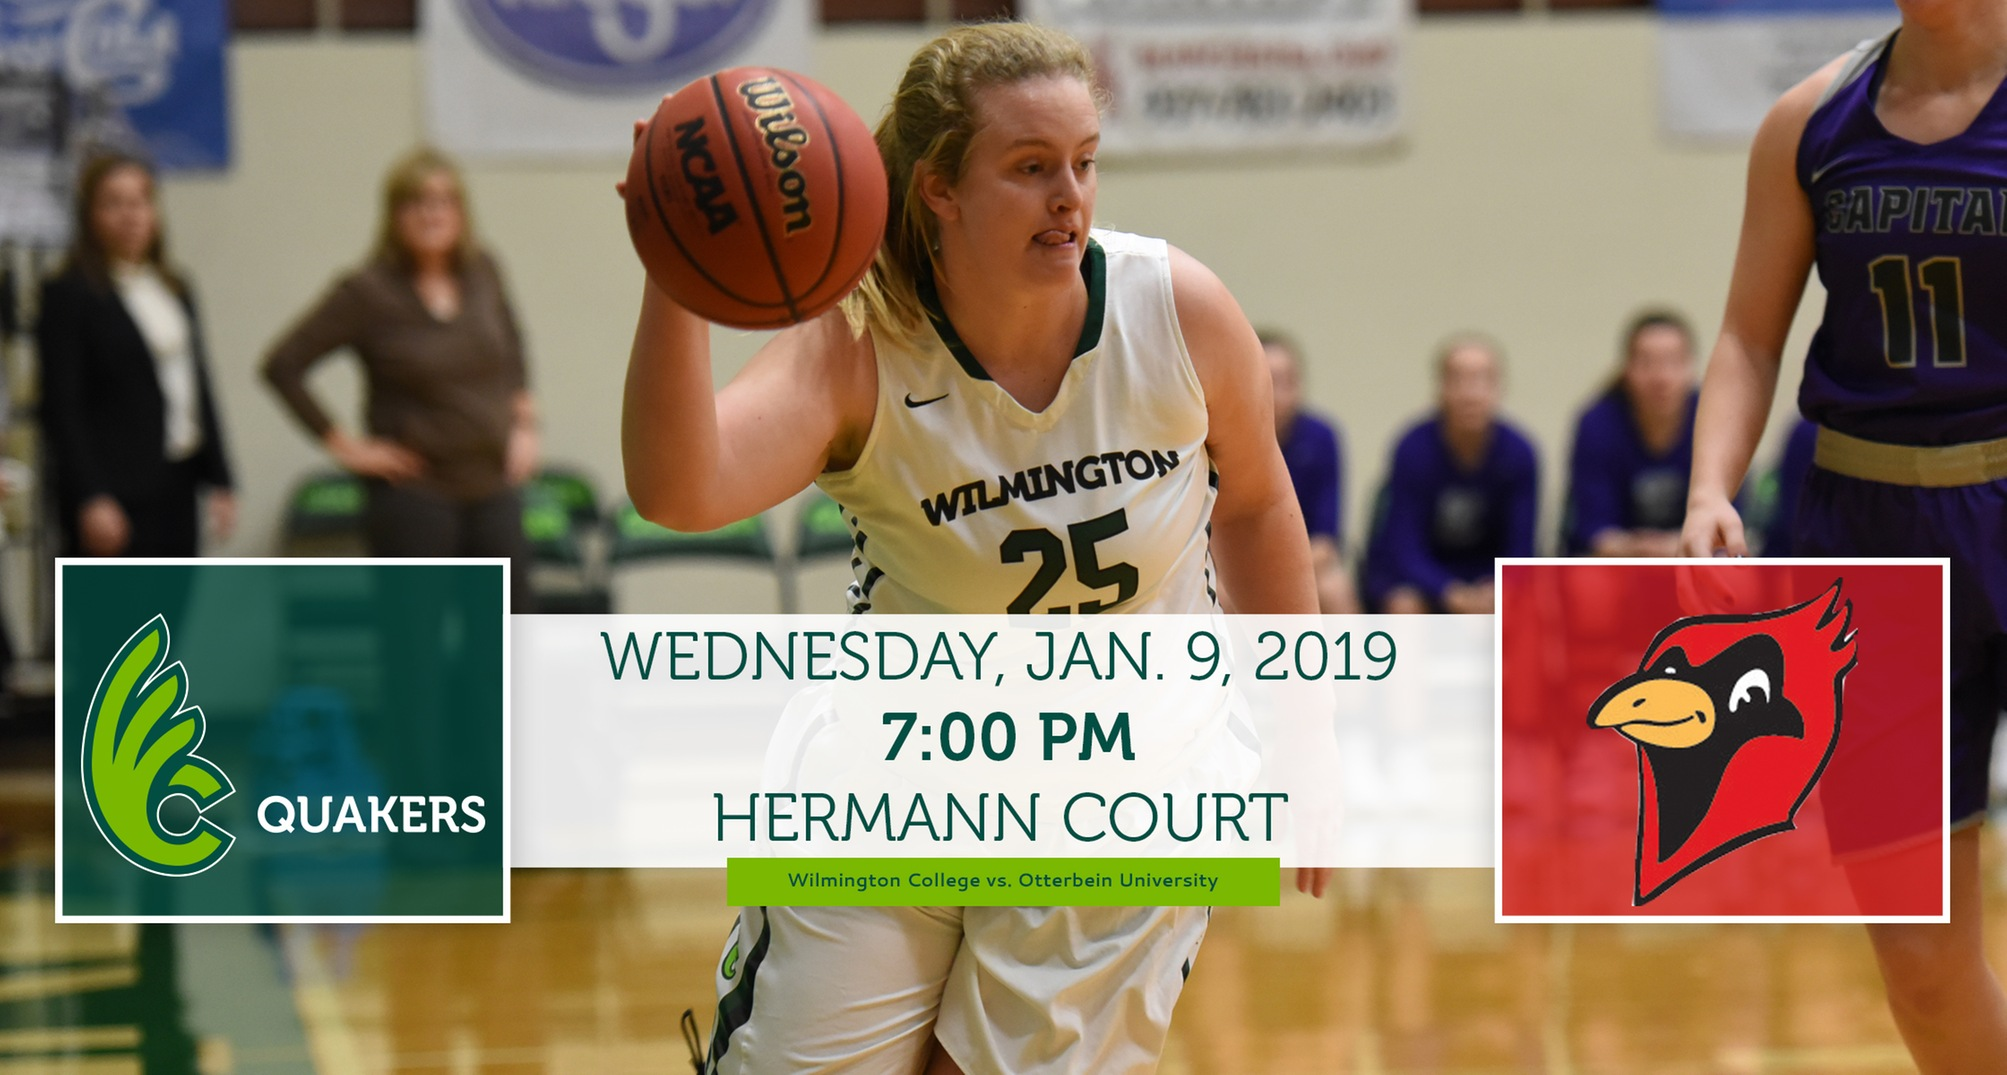 Women's Basketball Hosts Otterbein in OAC Basketball Game of the Week Wednesday